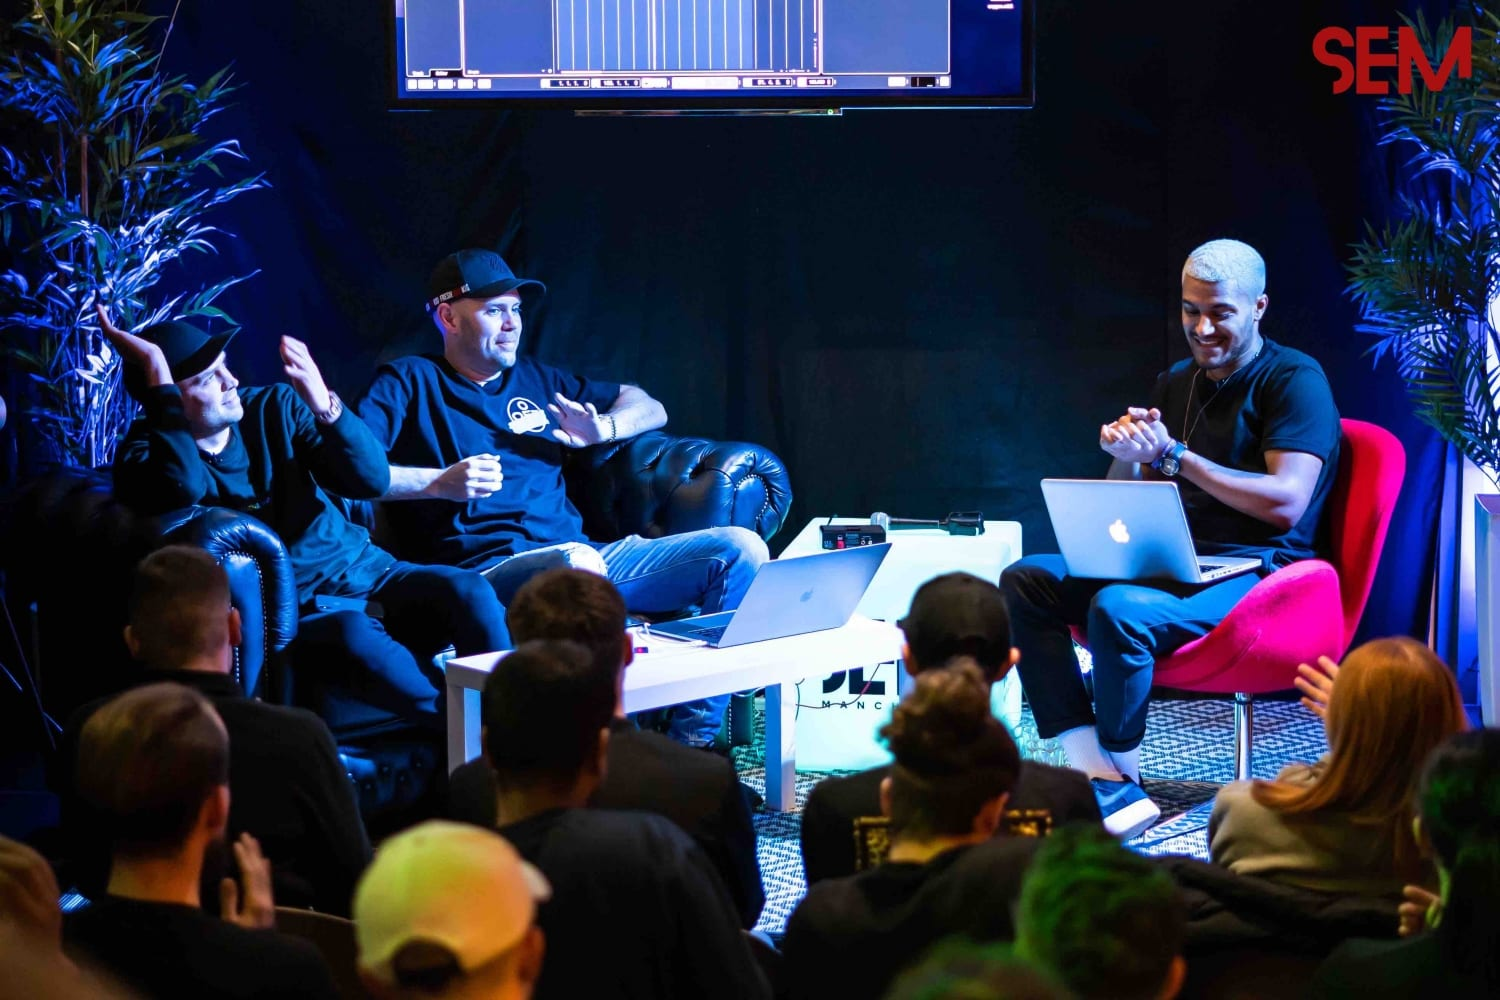 SEM Sessions-In Conversation with Solardo Round Up 7